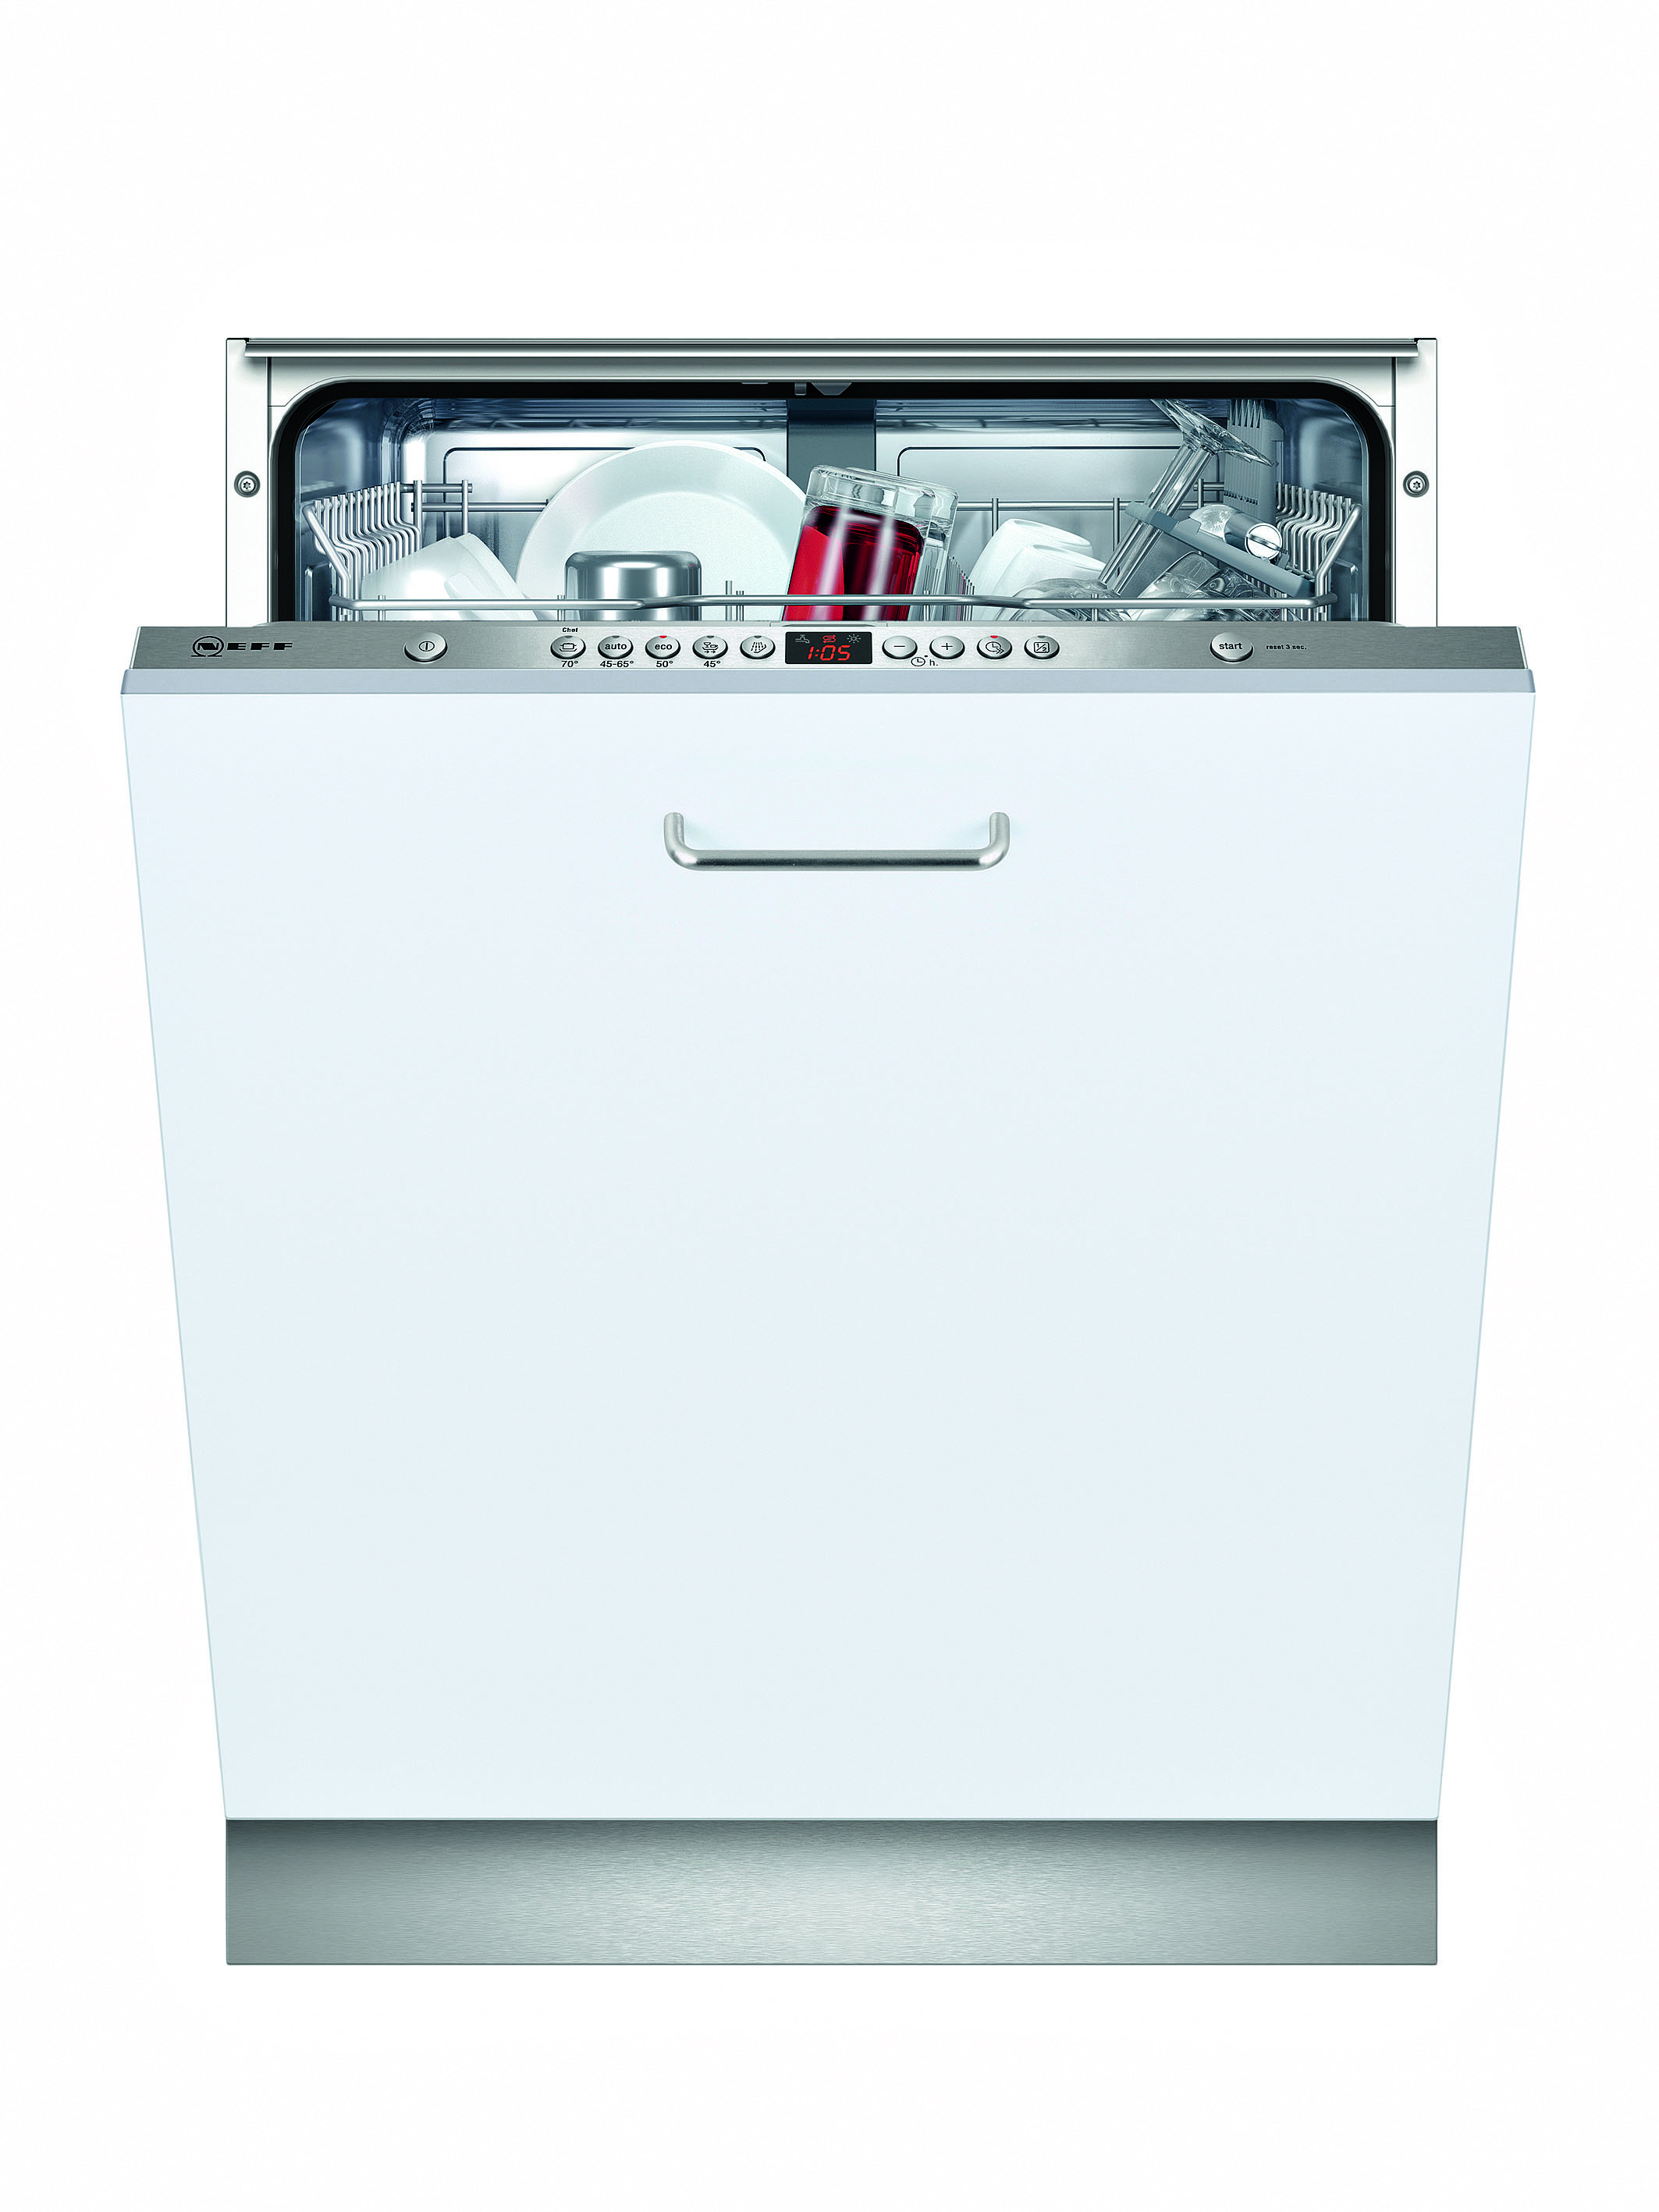 Neff S51N53X0EU dishwasher